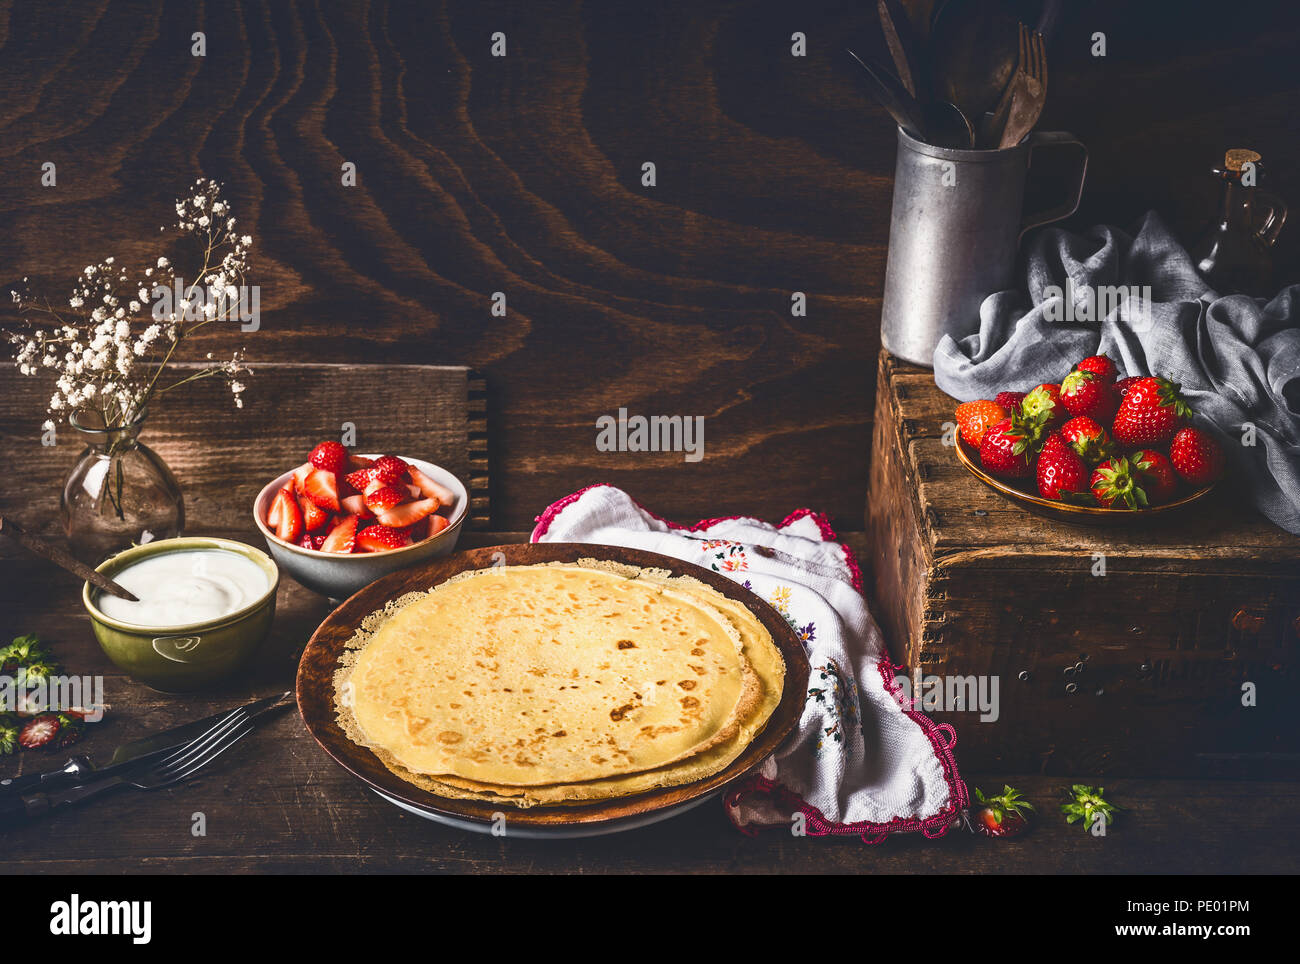 Homemade crepes on dark rustic kitchen table with strawberries and yogurt in bowls . Country style food still life - Stock Image